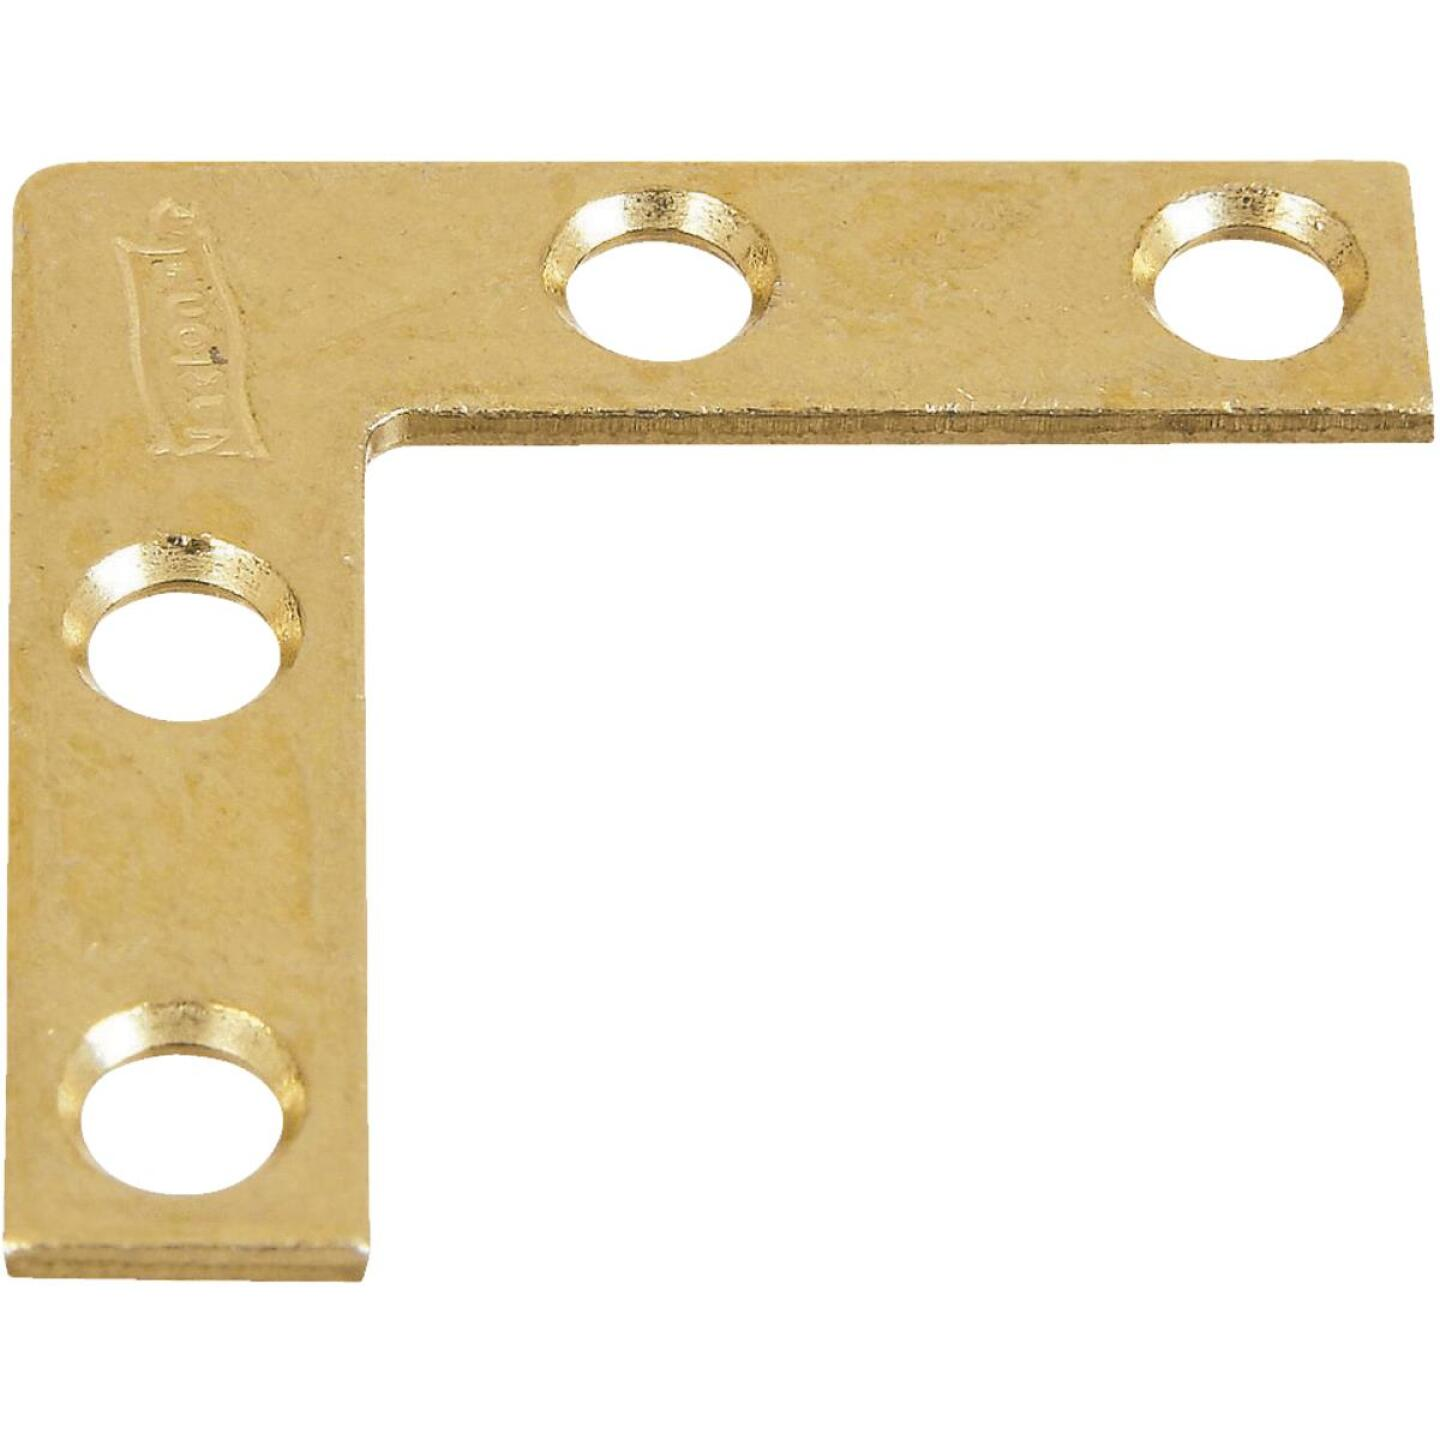 National Catalog 117 1-1/2 In. x 3/8 In. Brass Flat Corner Iron (4-Count) Image 1